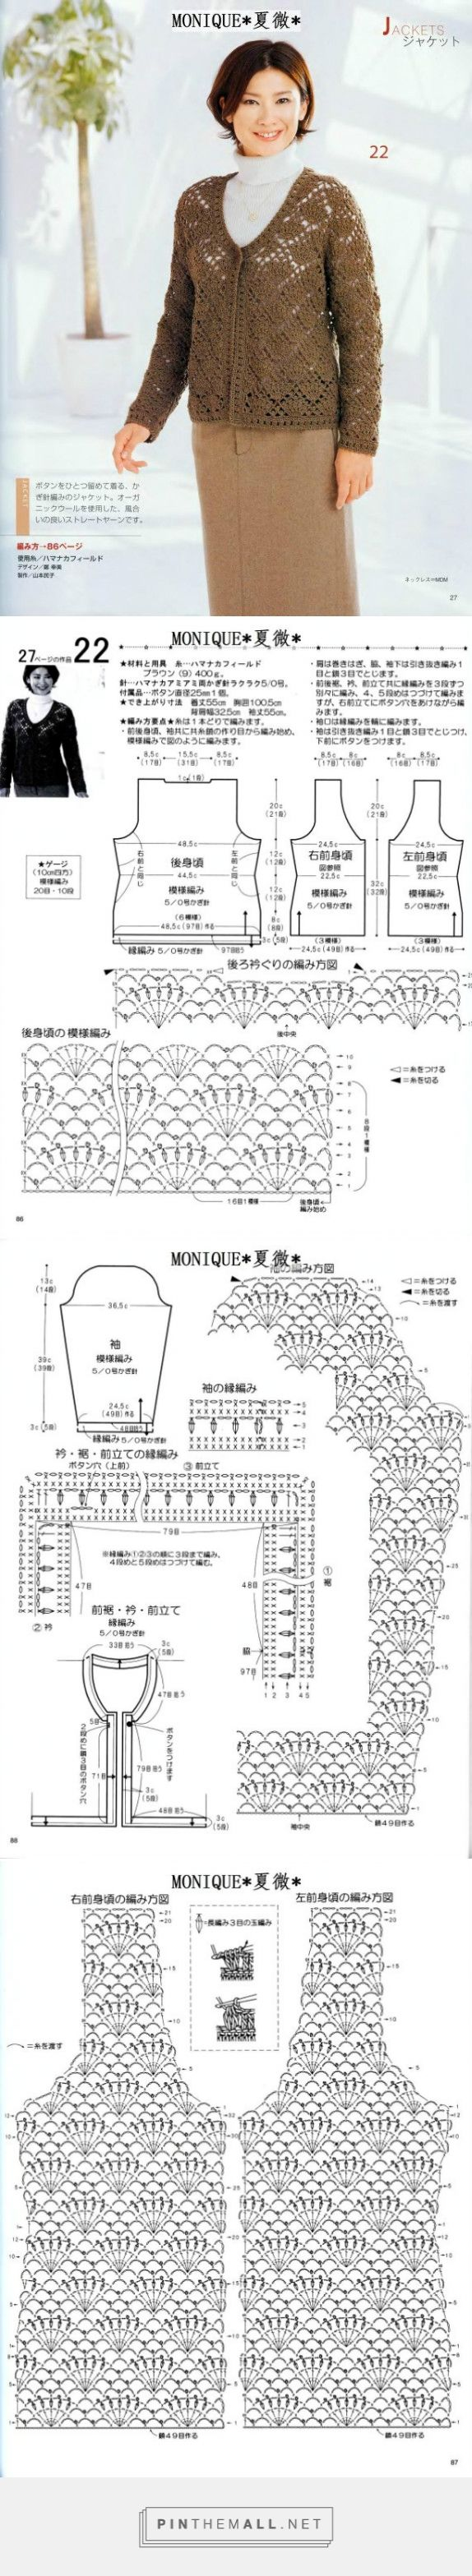 Crochet lace jacket ~~ Nice fans and arcs stitch pattern ~~ complete schematics and charts ~~